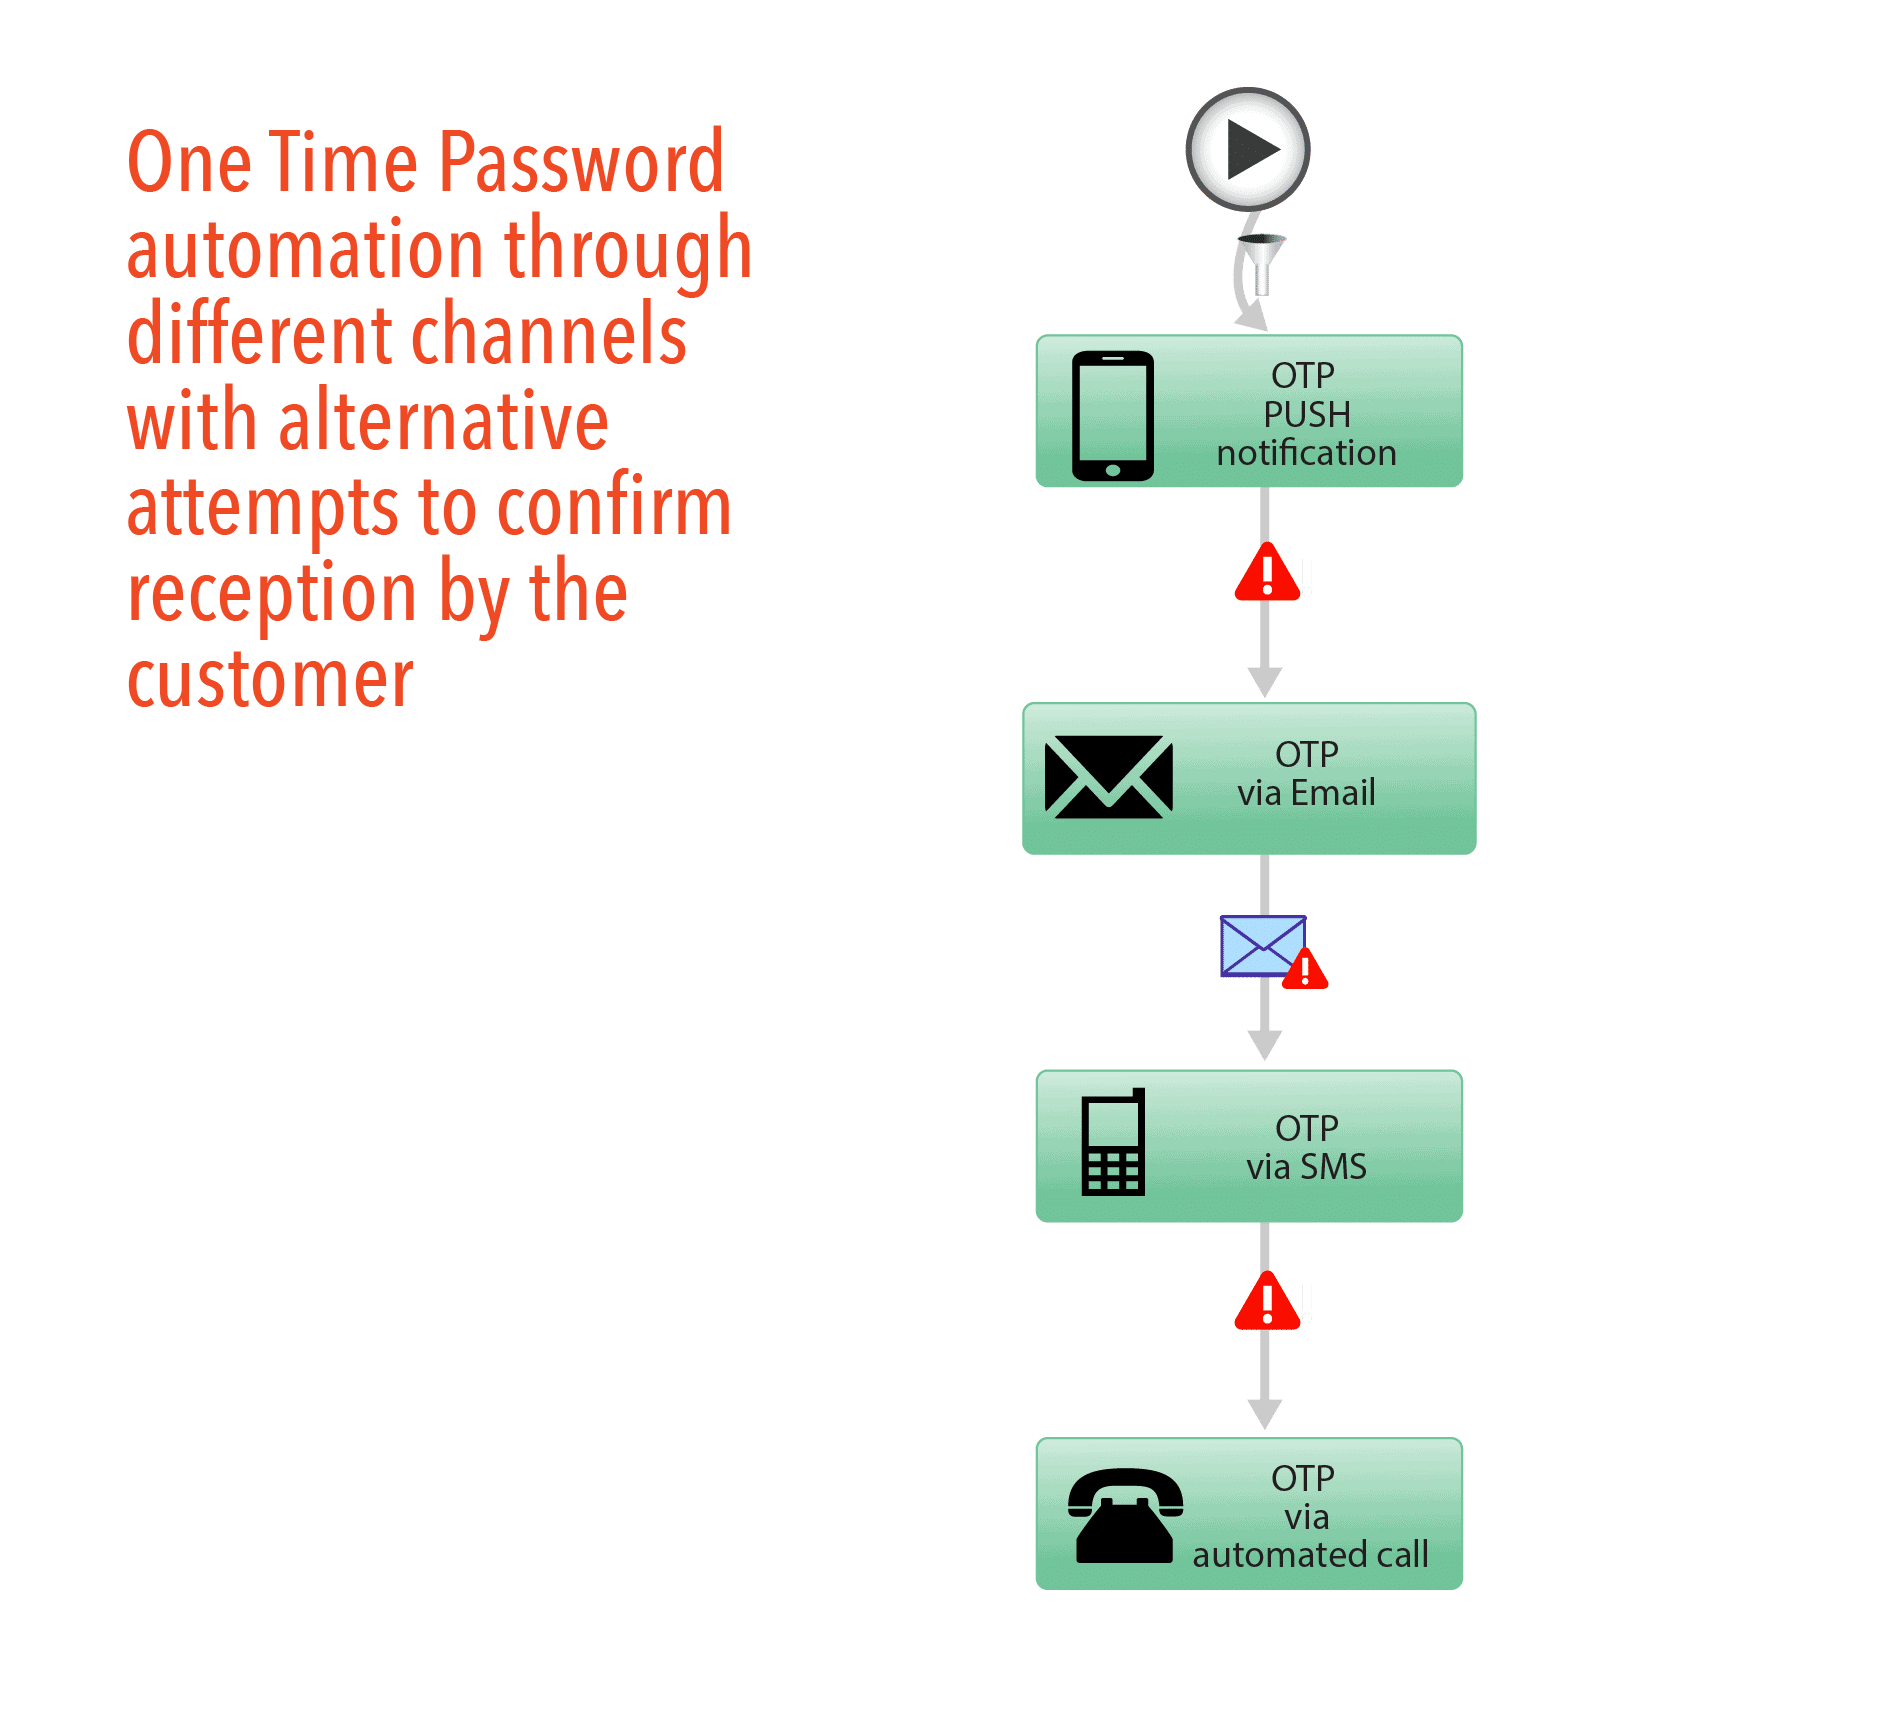 One time password automation